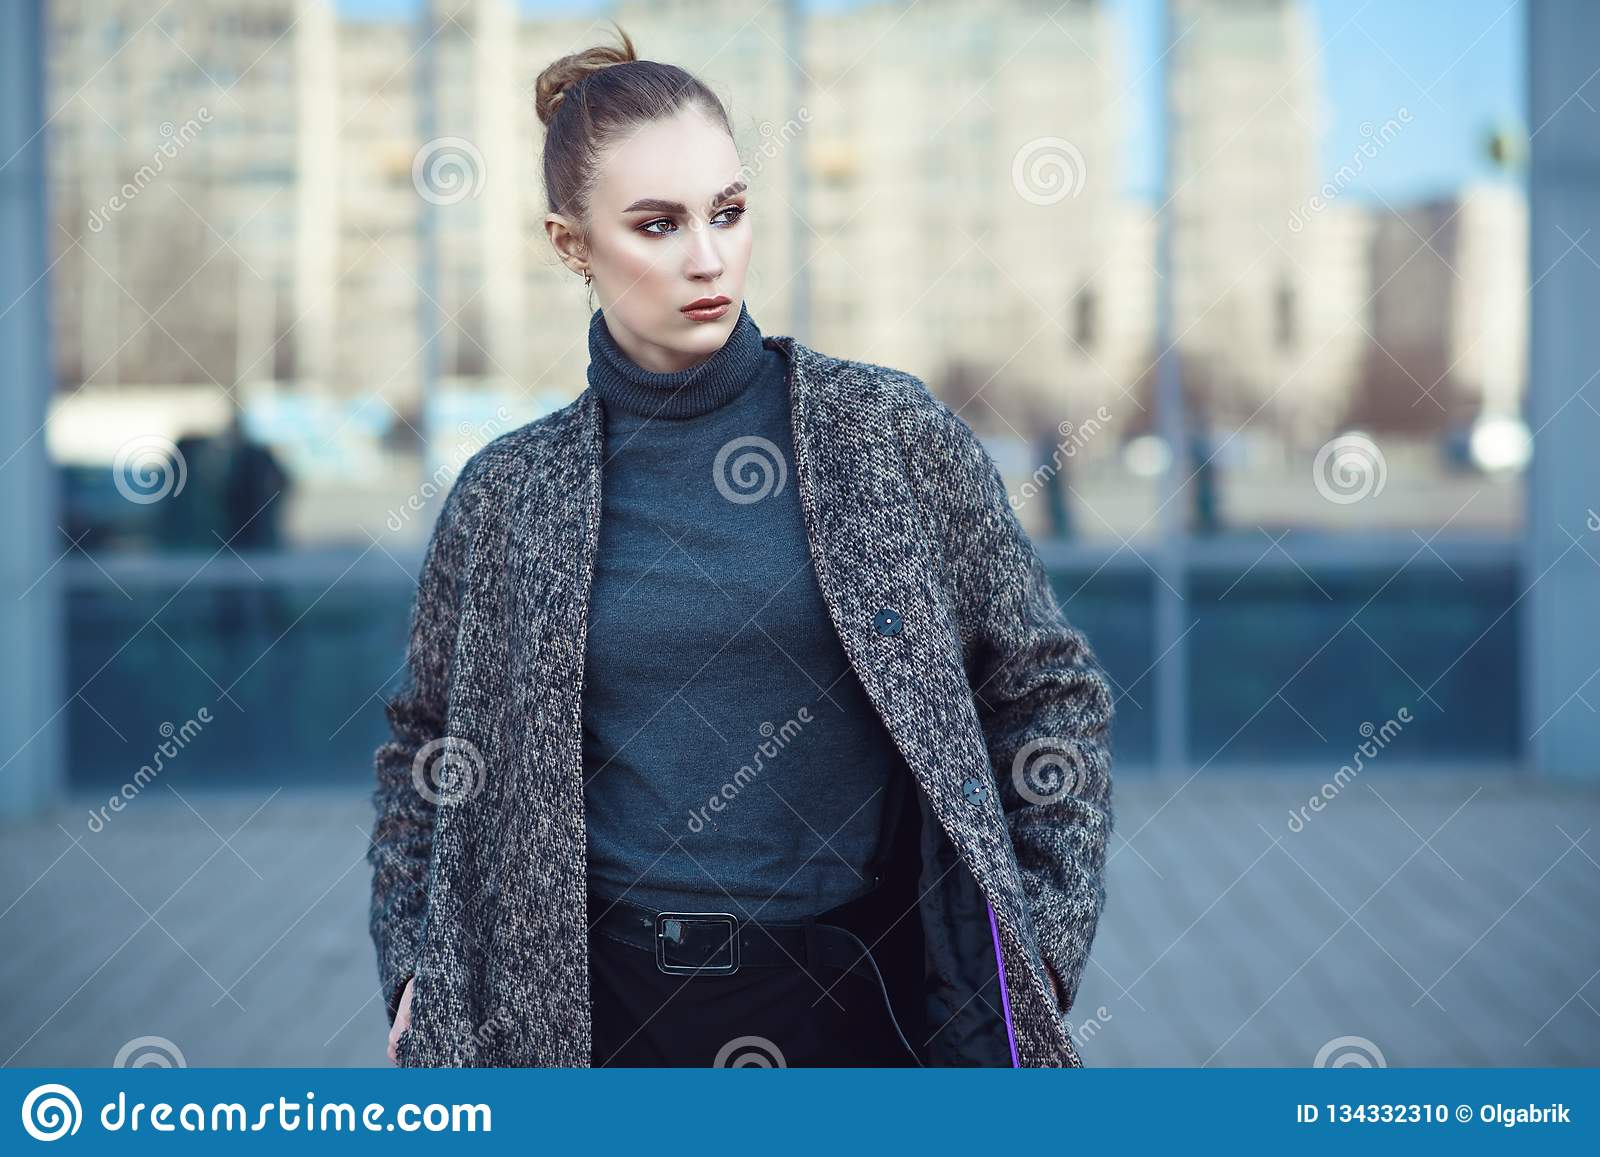 Beautiful young woman walking at the mirrored window of city mall